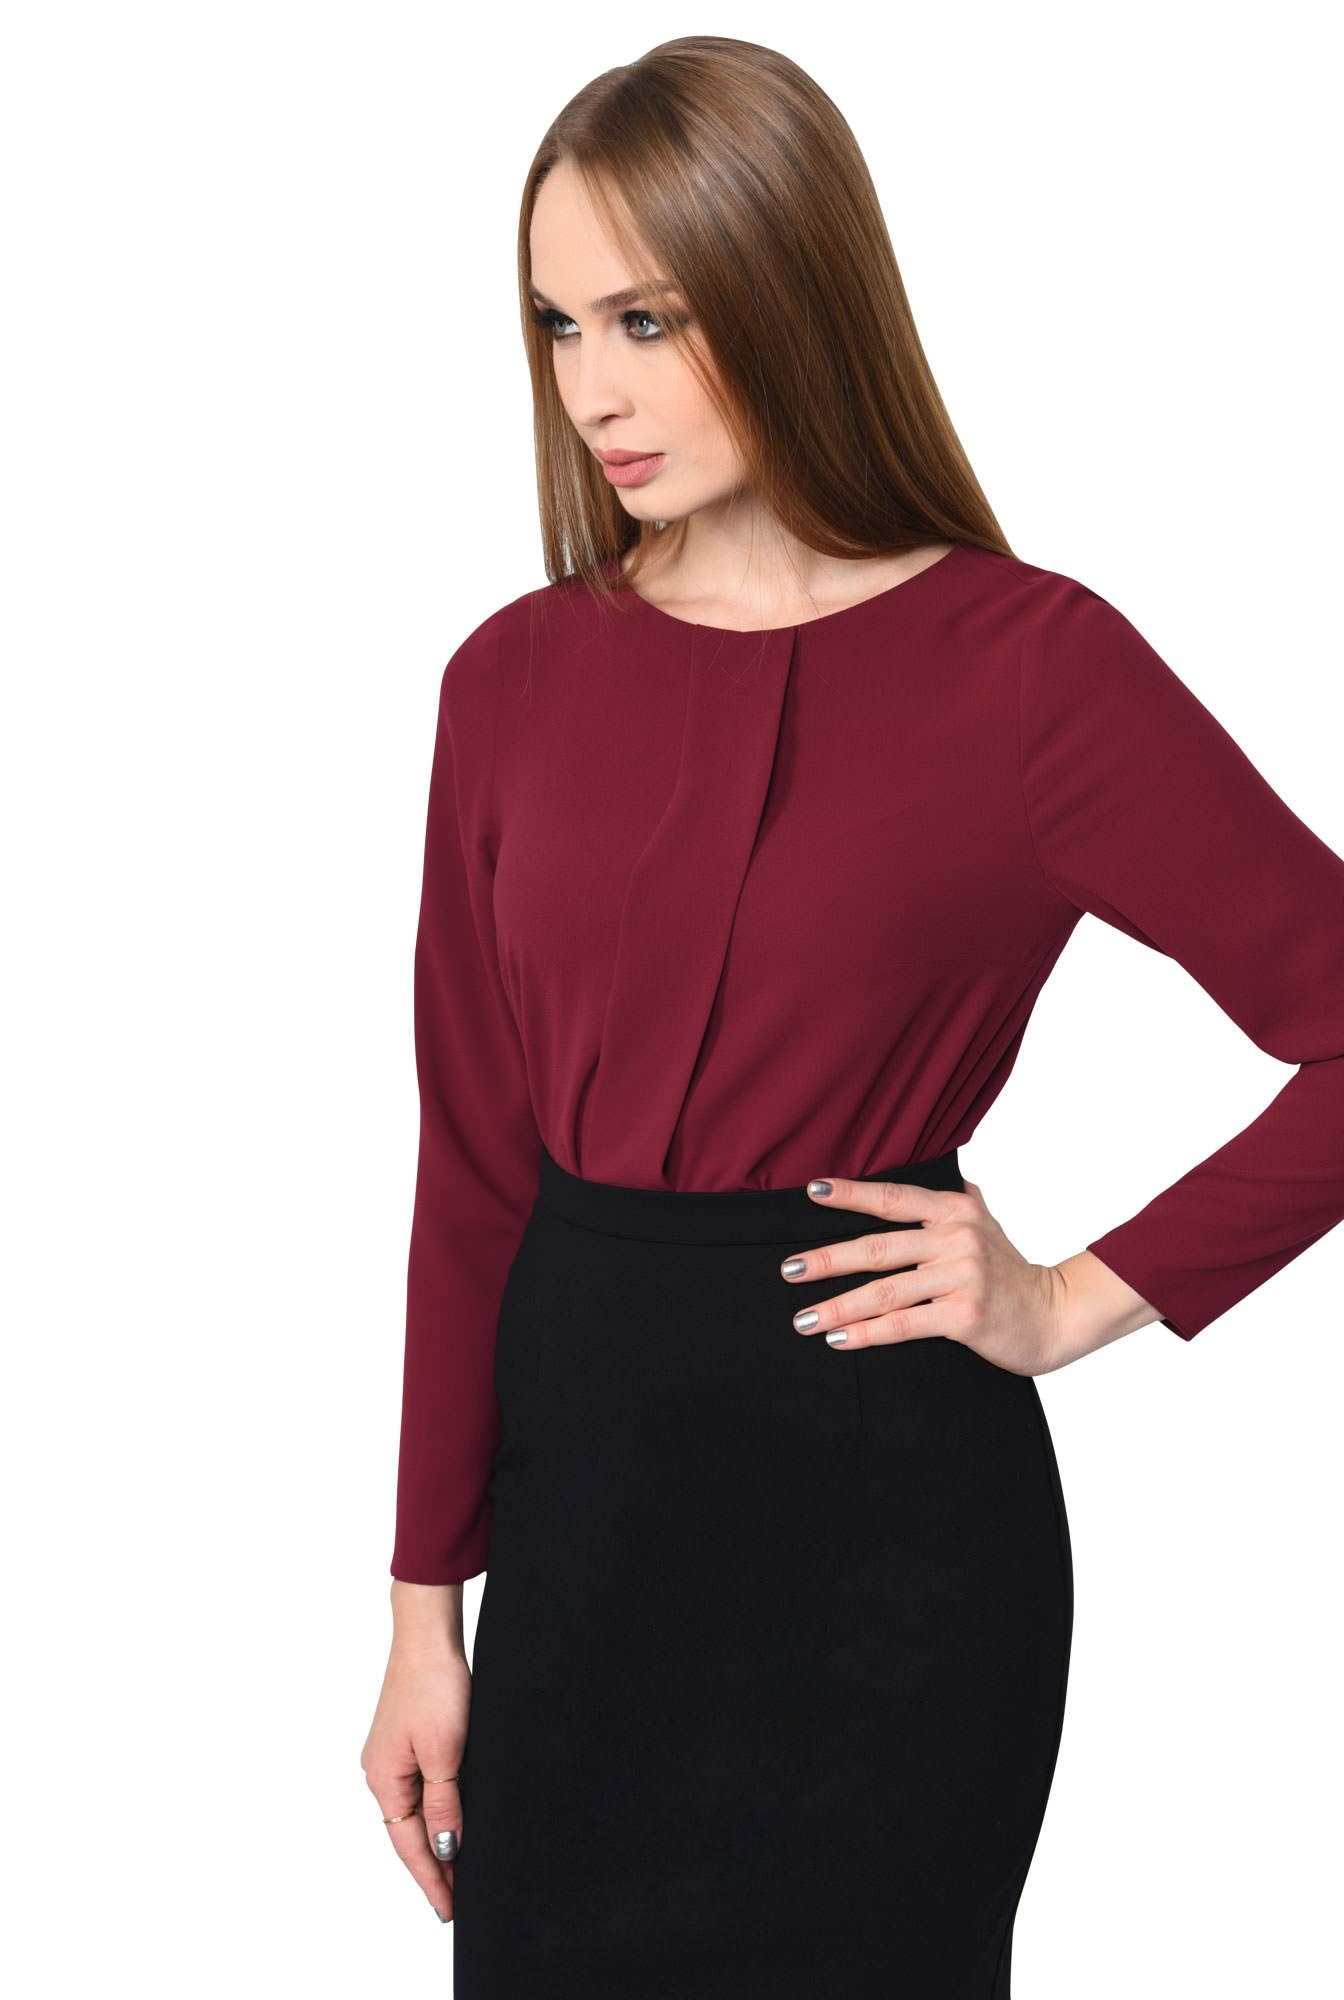 2 - BLUZA OFFICE DREAPTA BL 162-BURGUNDY